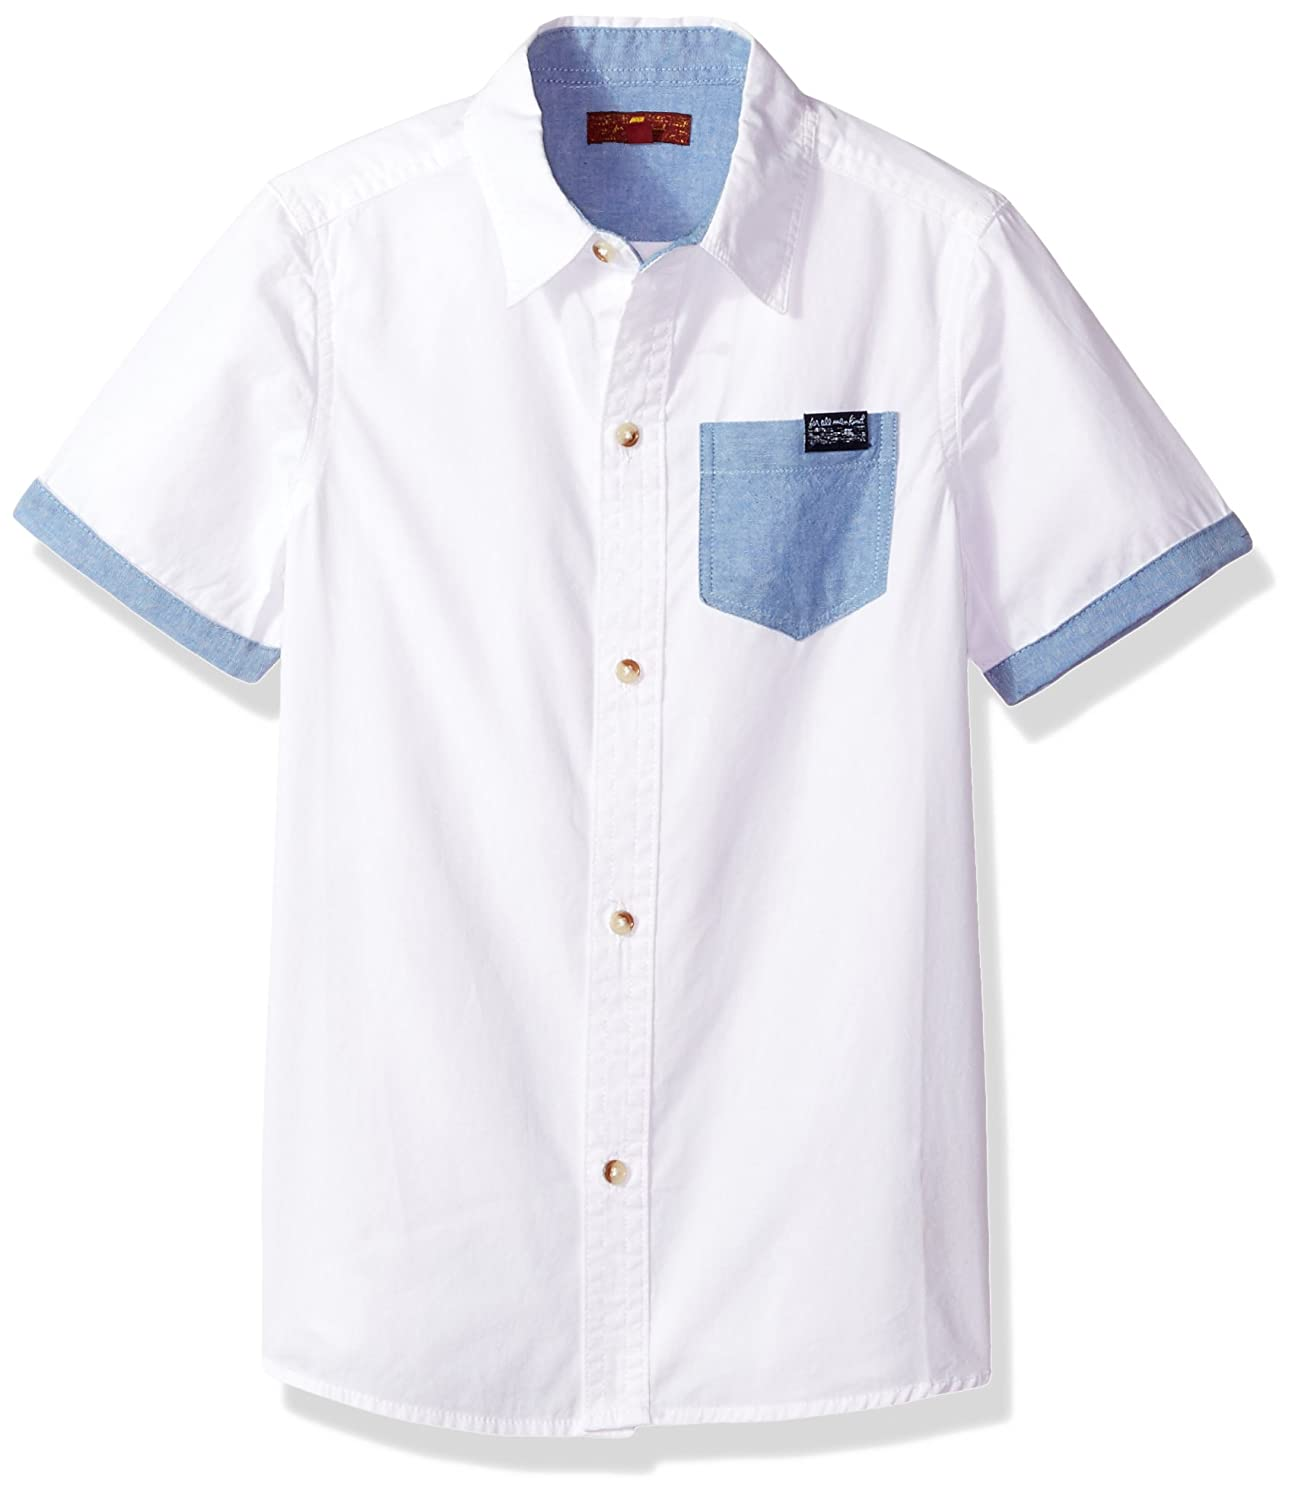 7 For All Mankind Boys' S/S Shirt 2